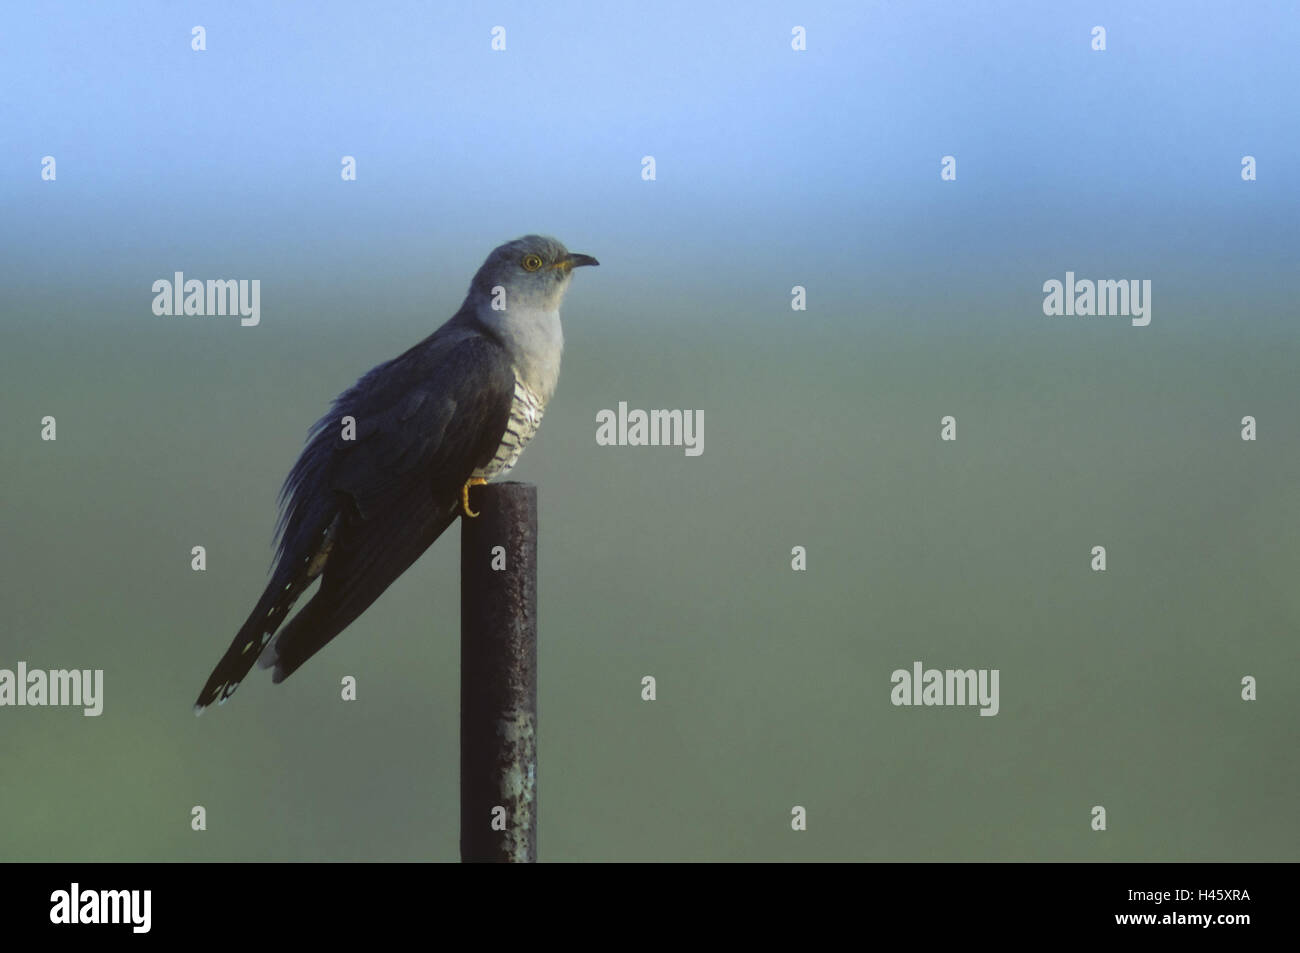 Cuckoo, Cuculus canorus, iron rod, sit, - Stock Image